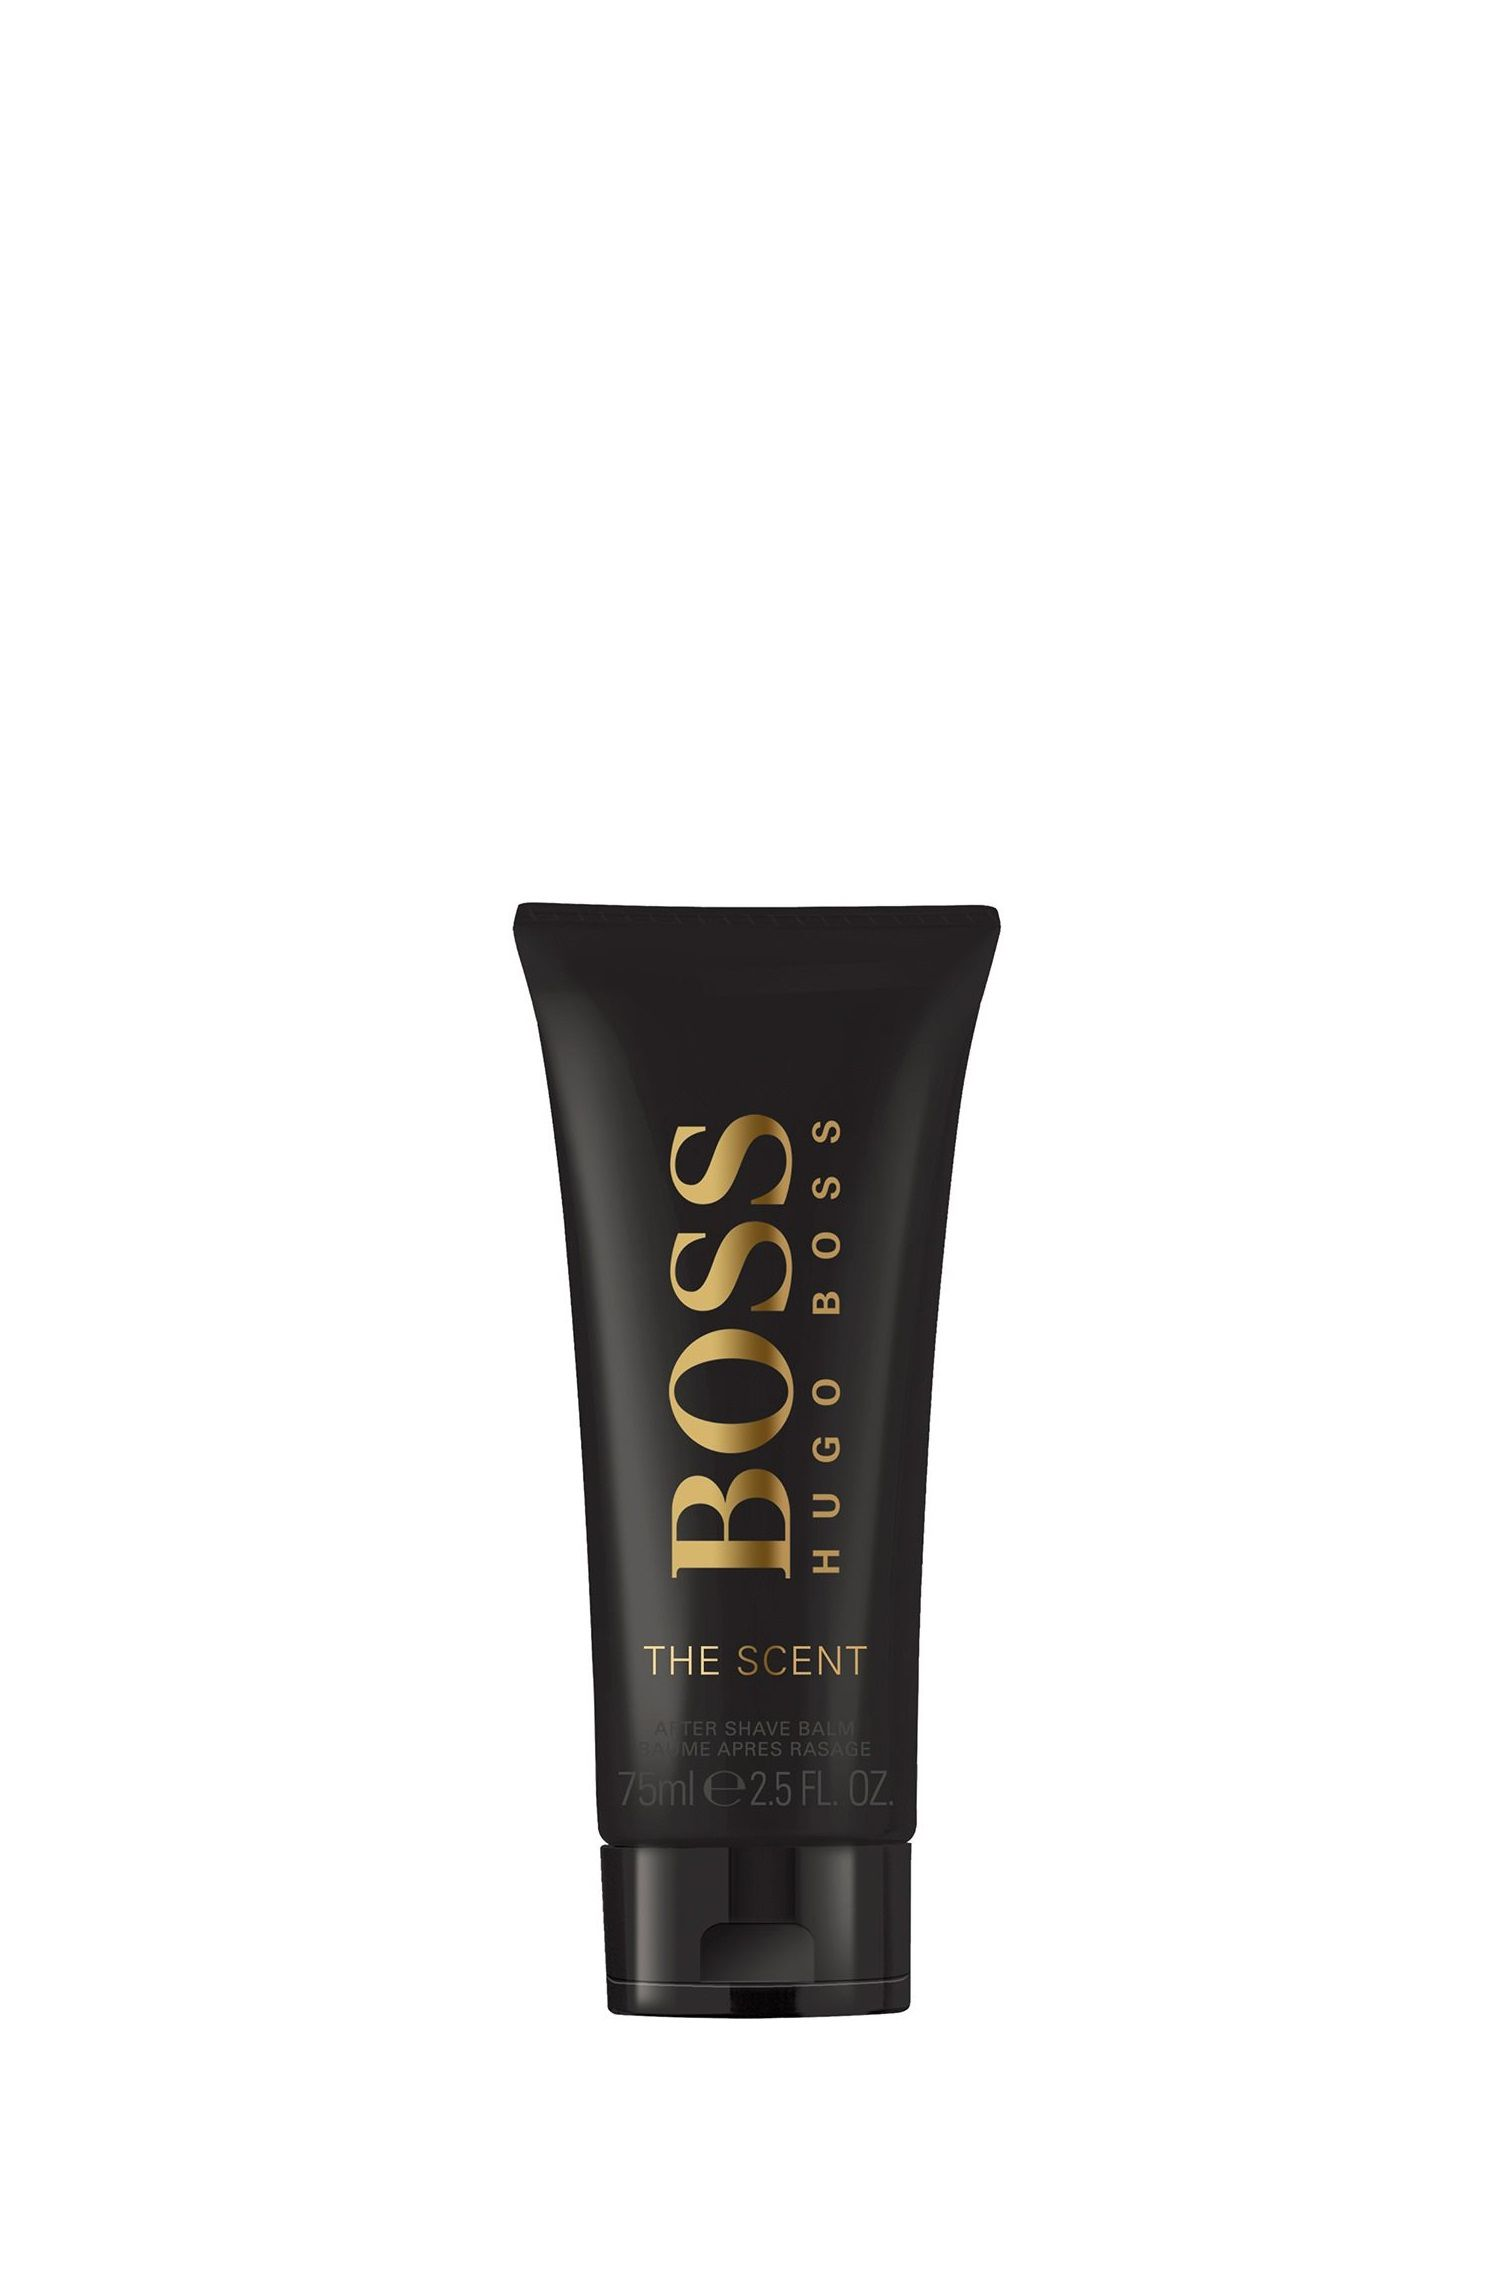 BOSS The Scent aftershavebalsam 75 ml